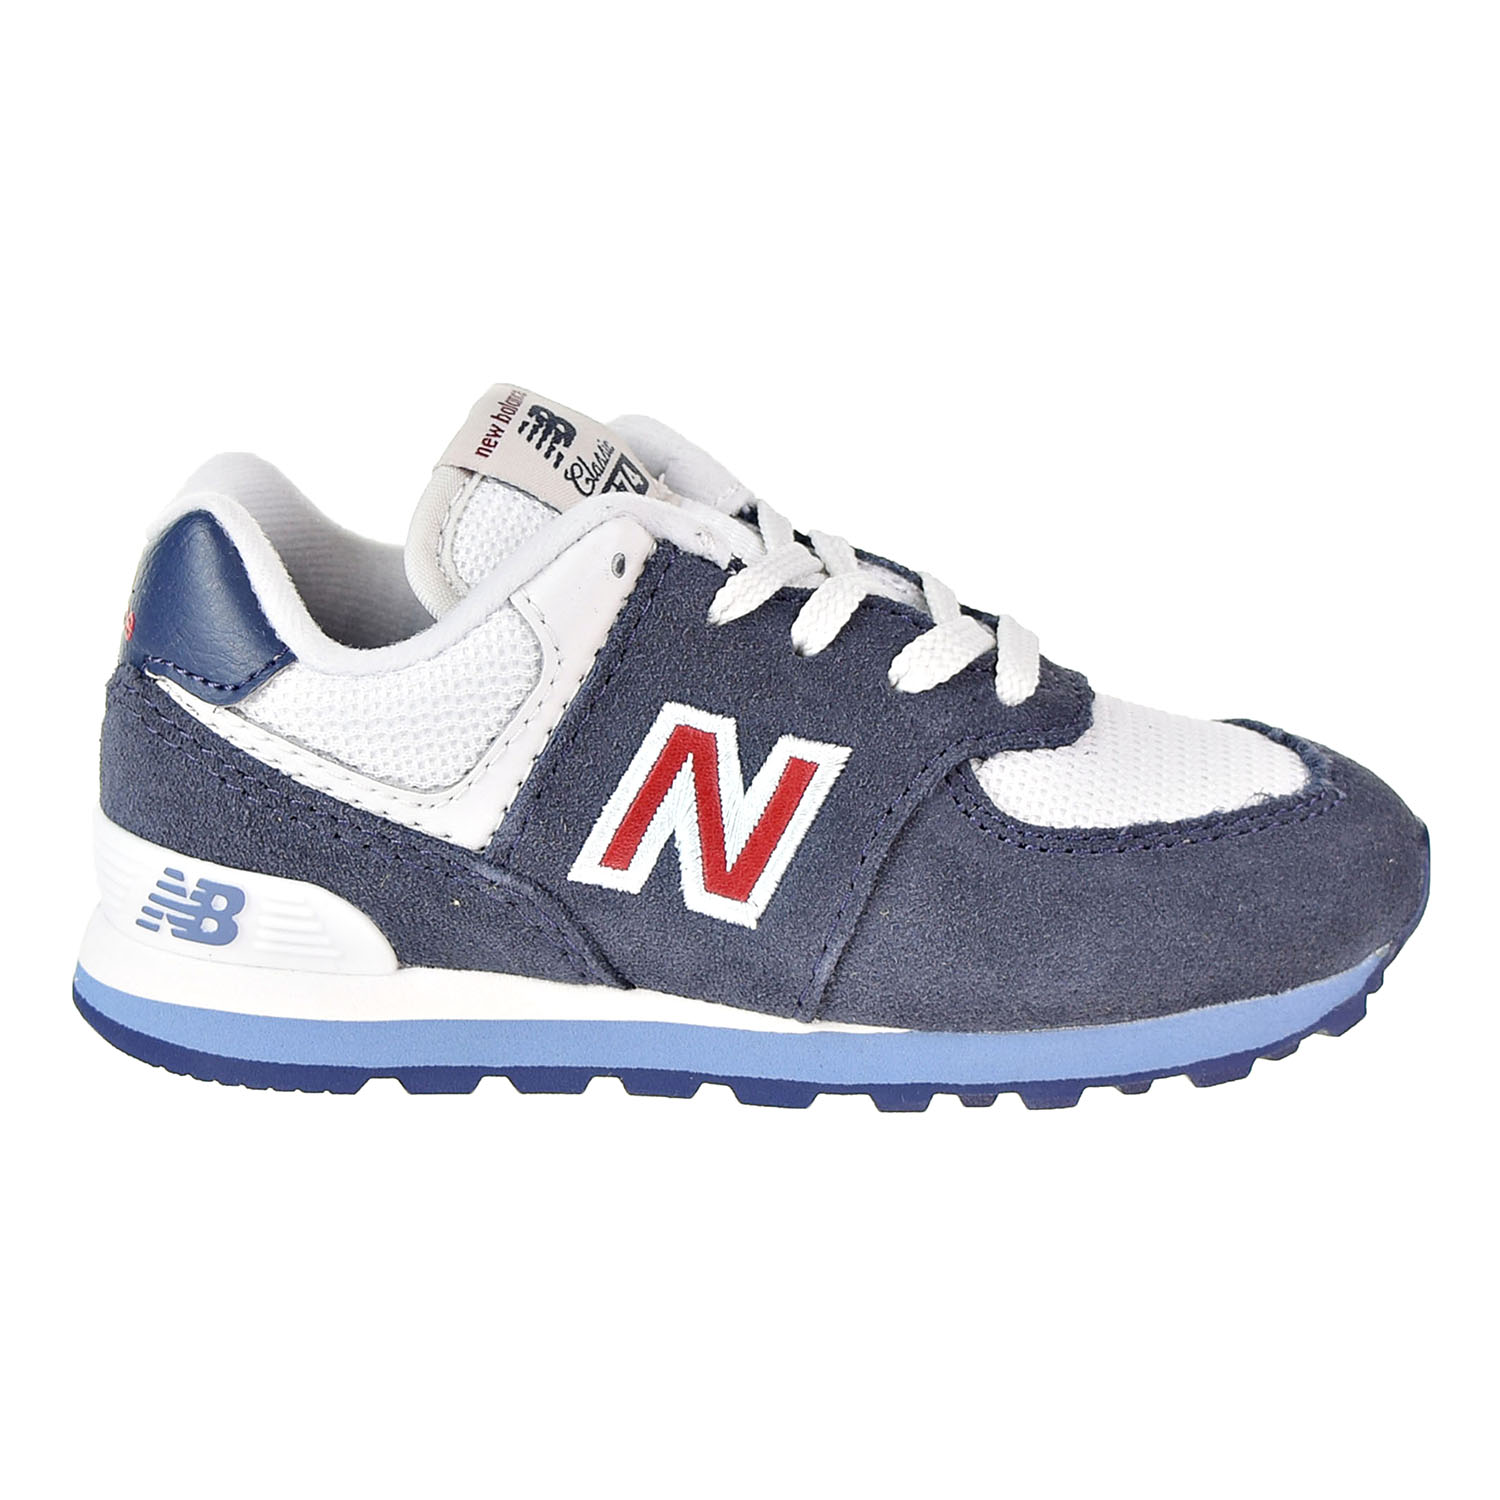 New Balance - New Balance 574 Serpent Luxe Toddler's Shoes Navy ...